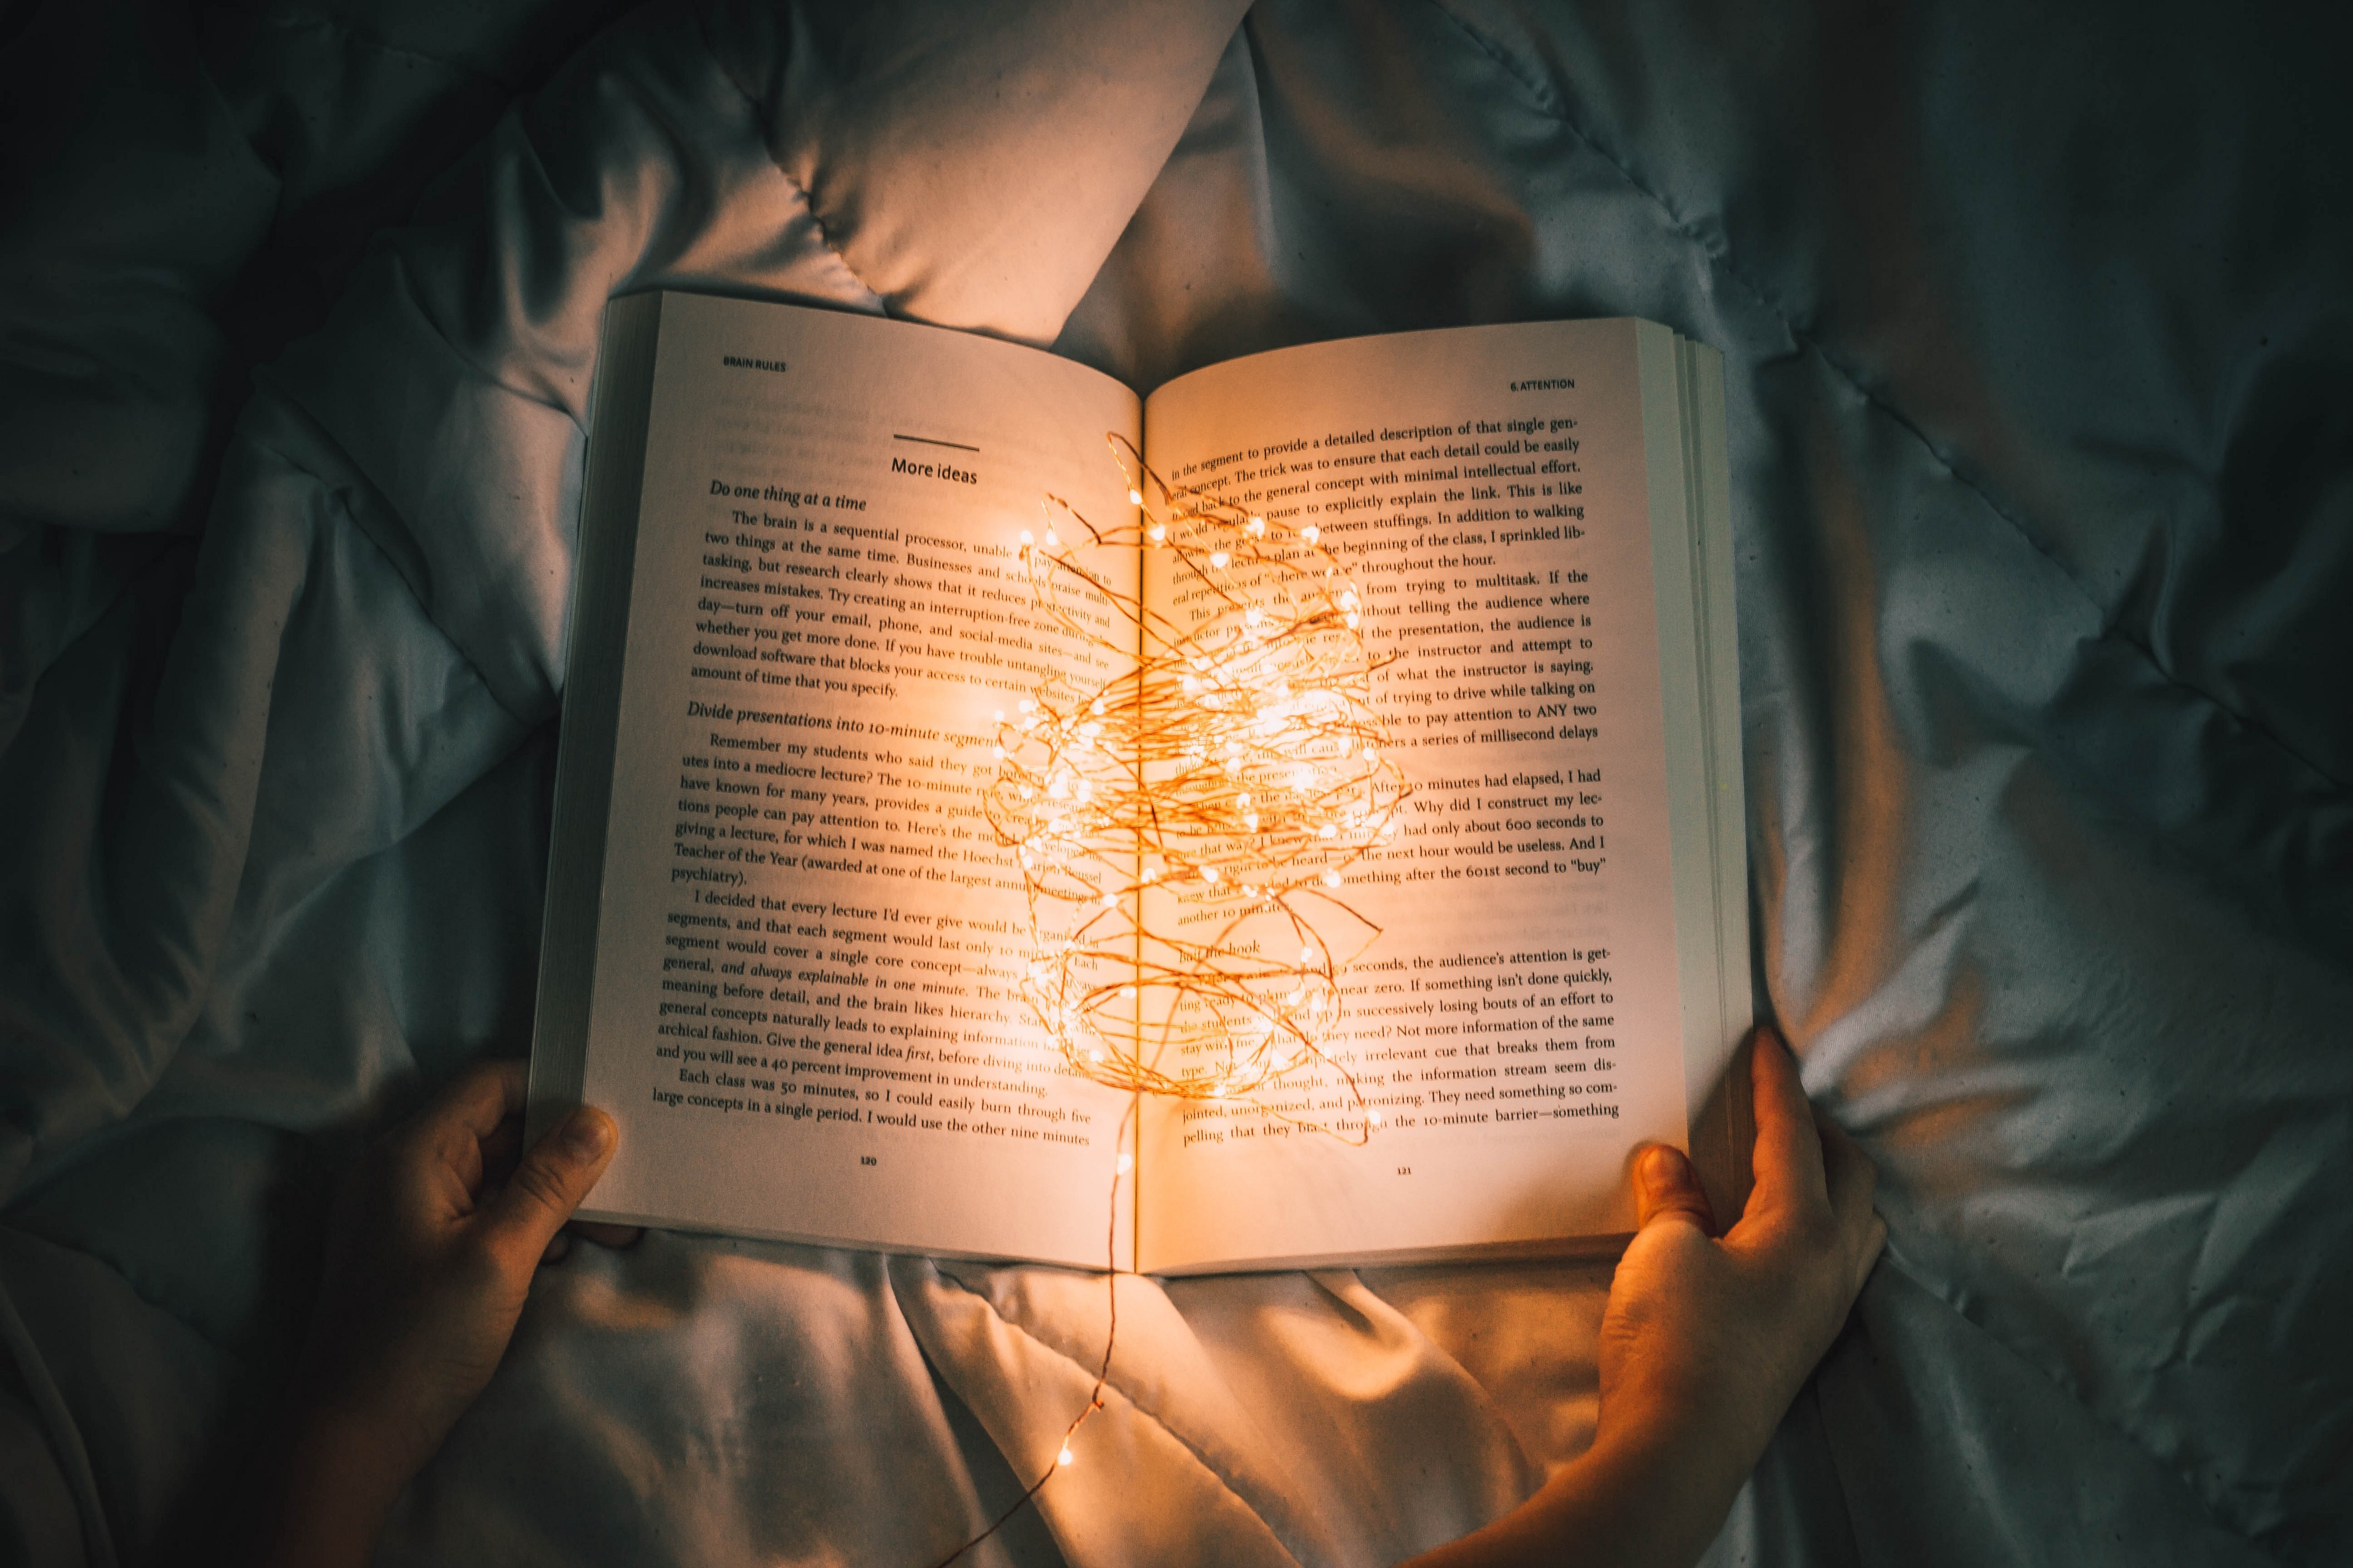 A open book where the pages are illuminated by a bunch of small lights.